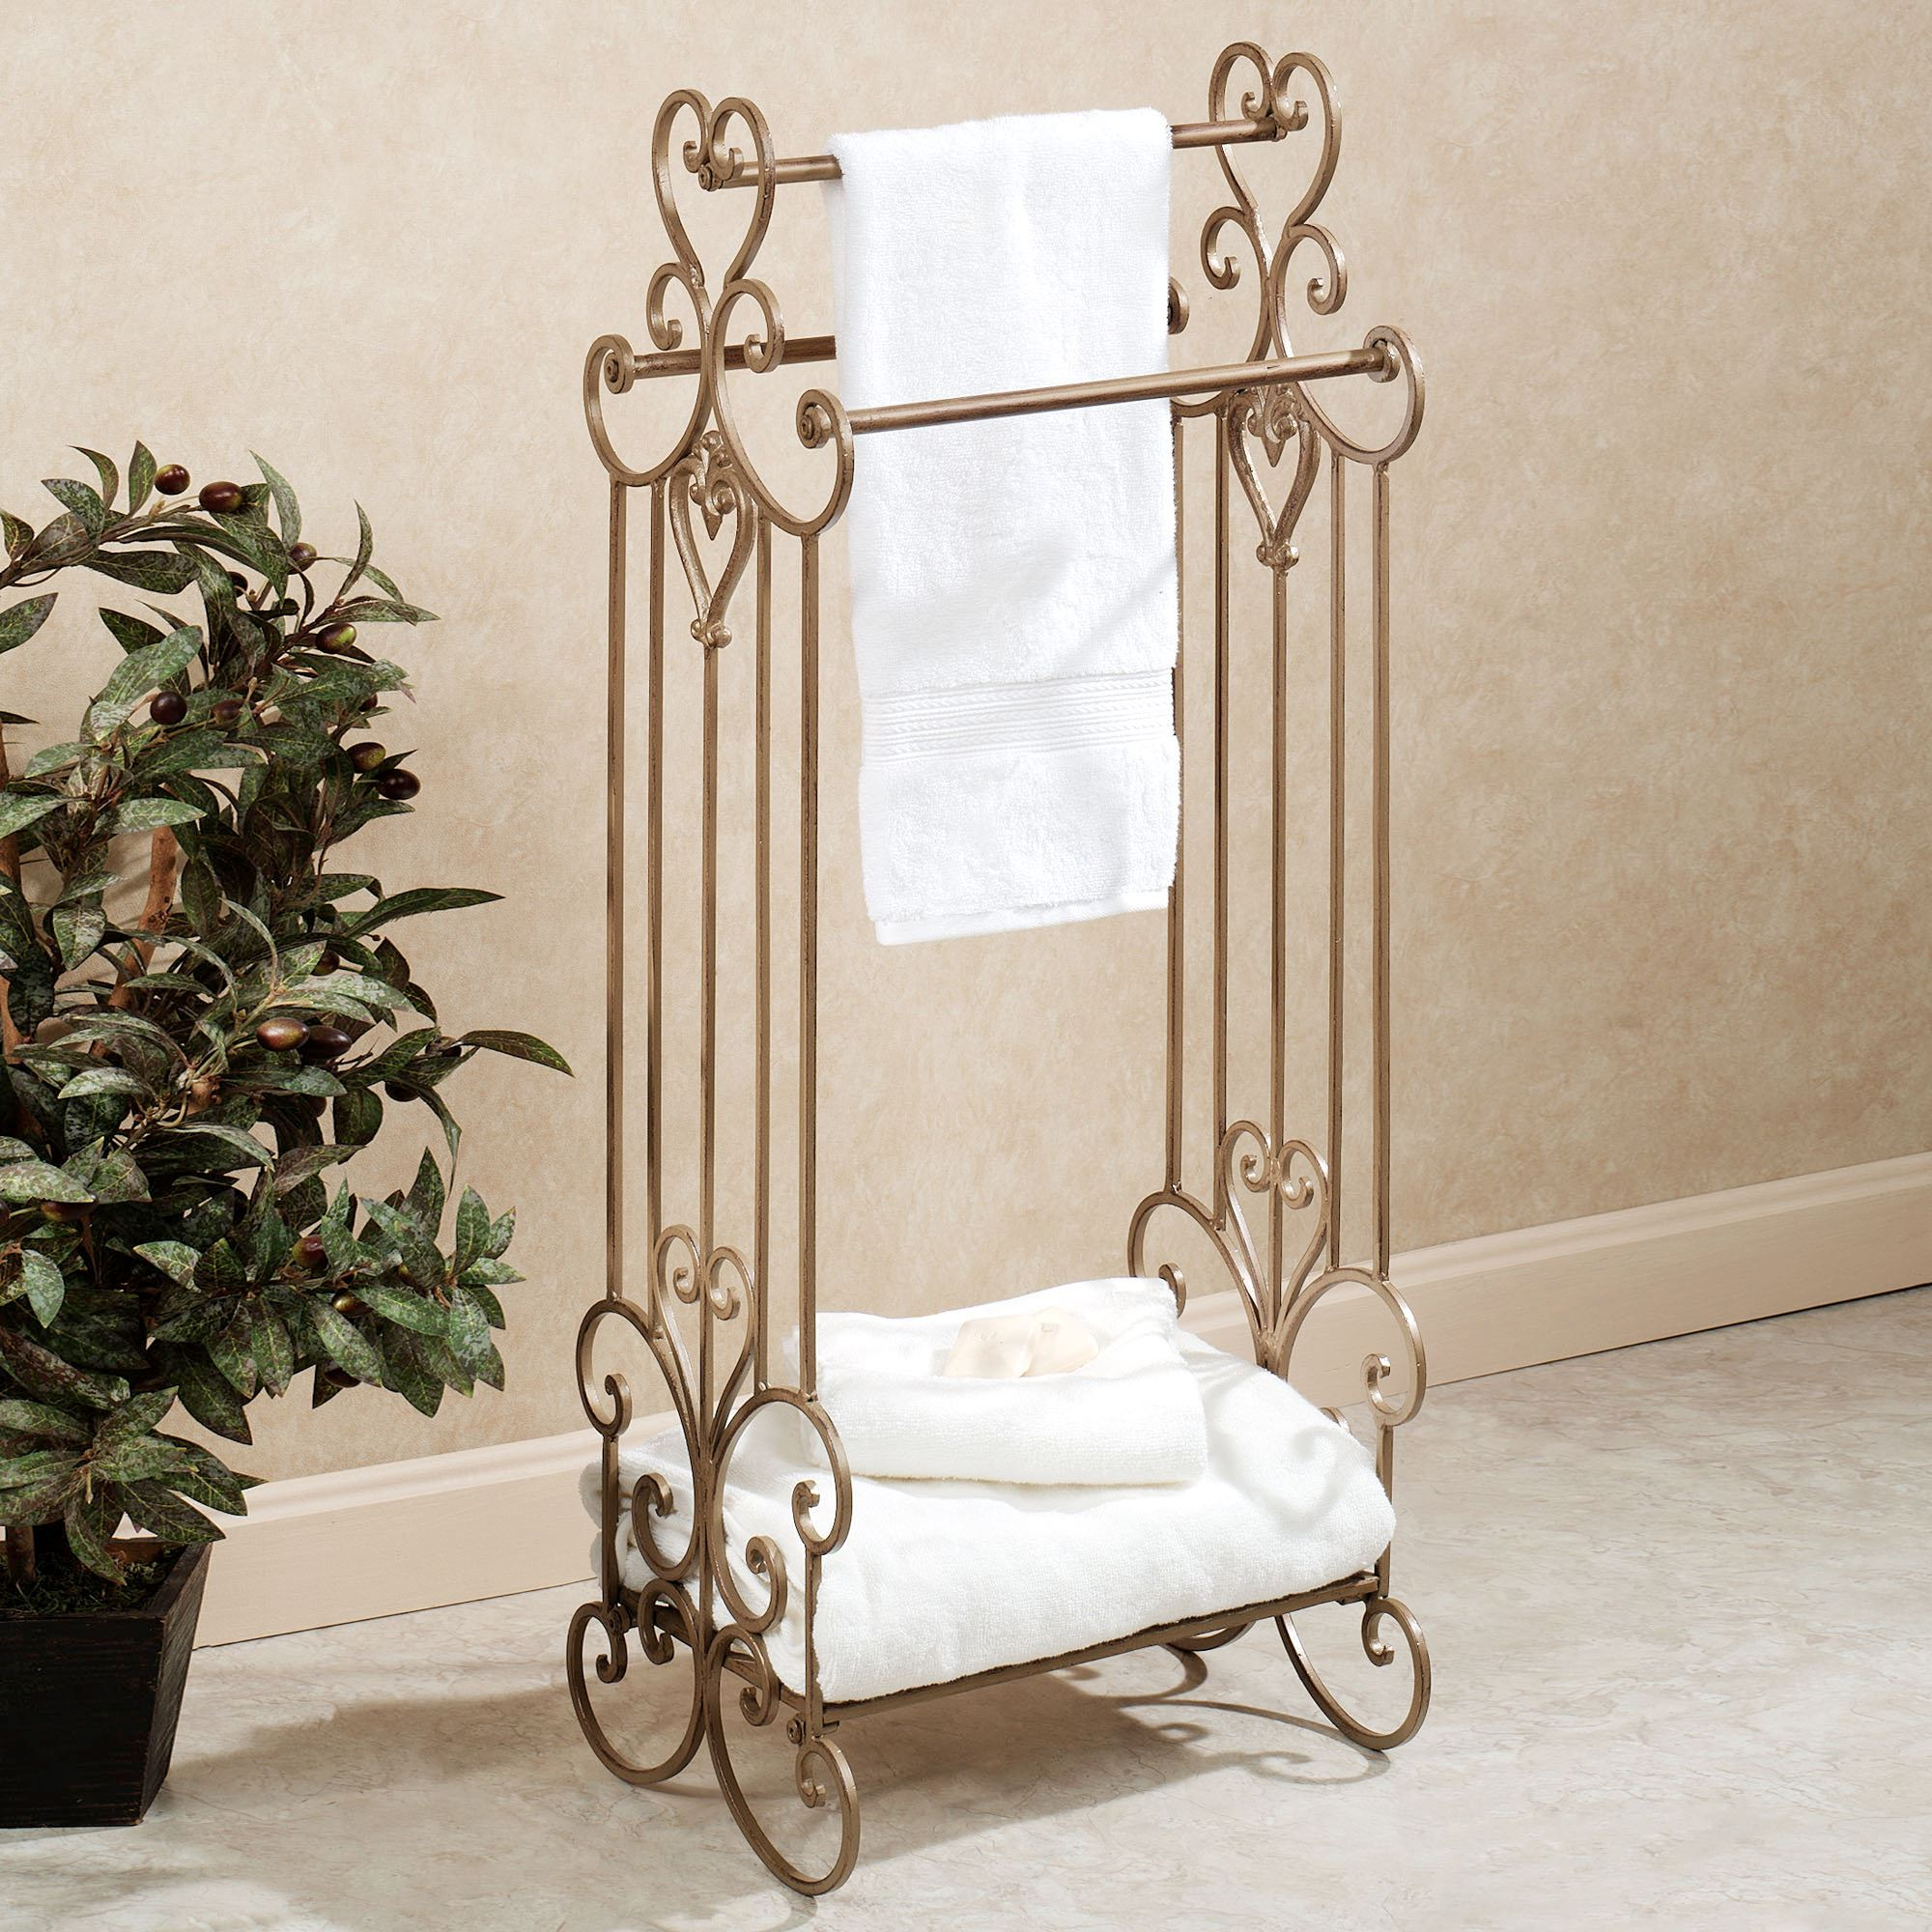 Aldabella Satin Gold Bath Towel Rack Stand